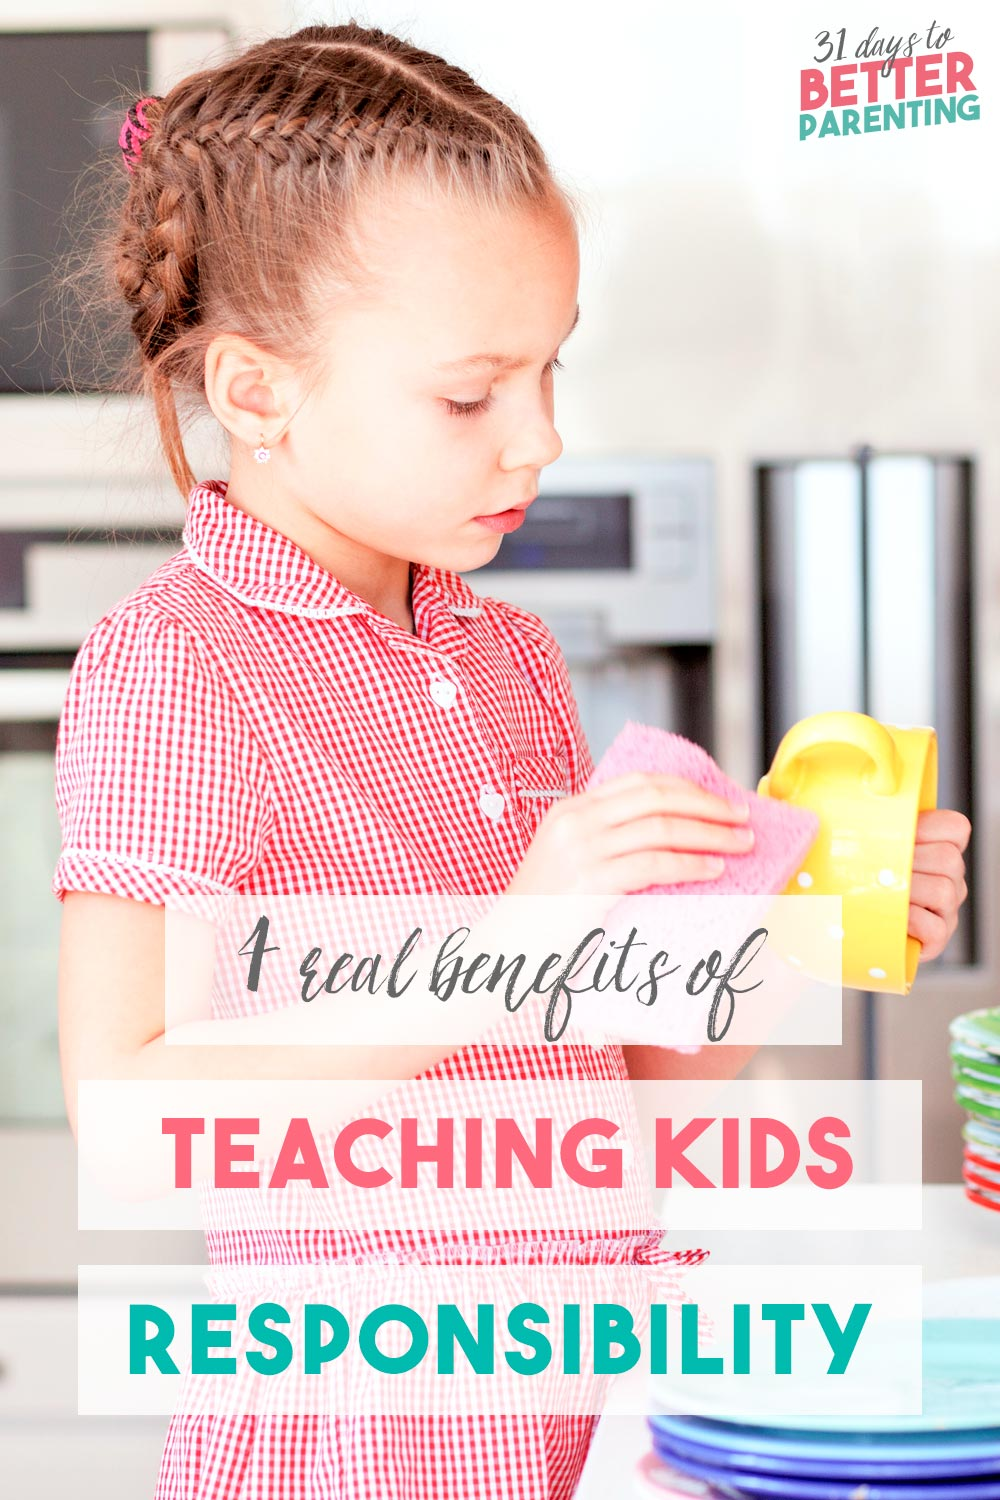 Teaching kids responsibility around the house and at school is an important task. Read 4 real benefits they get (plus parenting tips to put into action).